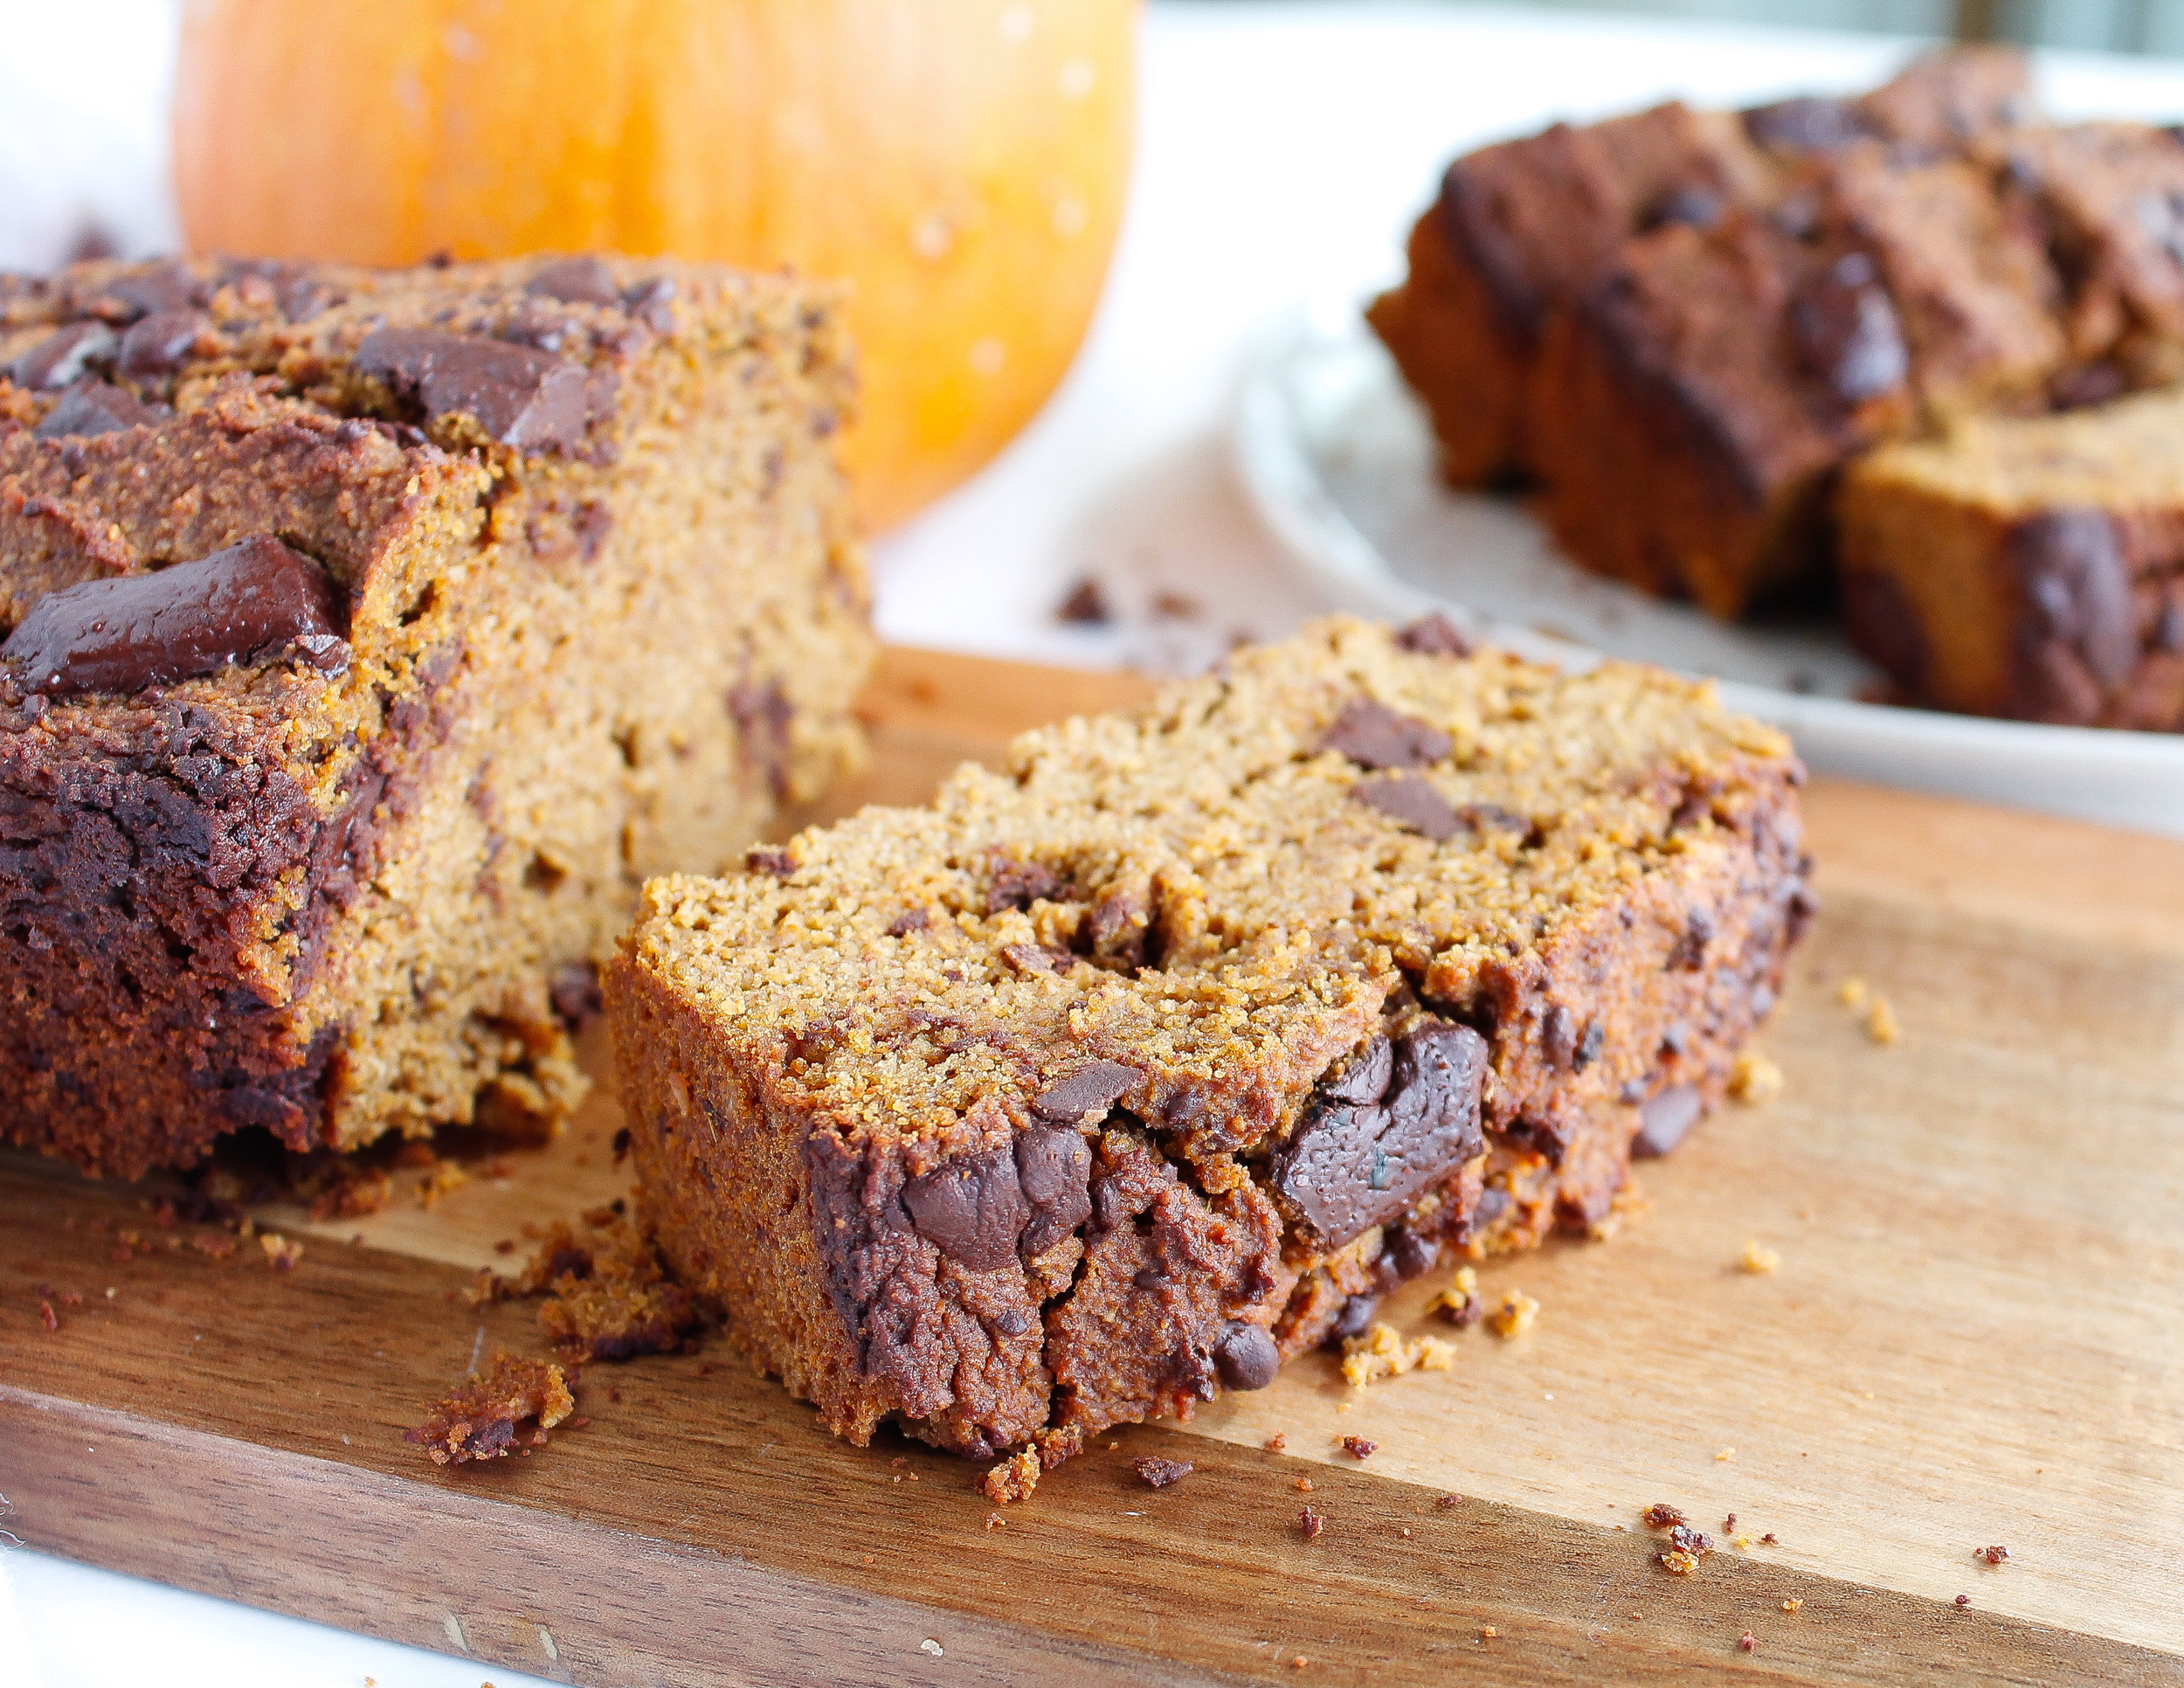 This paleo chocolate chip pumpkin bread is the perfect fall recipe! It makes for a great healthy snack, healthy breakfast or even healthy dessert! It's grain free, gluten free, dairy free AND refined sugar free, also making it a great allergy friendly recipe. Click through the try the recipe for yourself! #paleo #paleobaking #fallrecipes